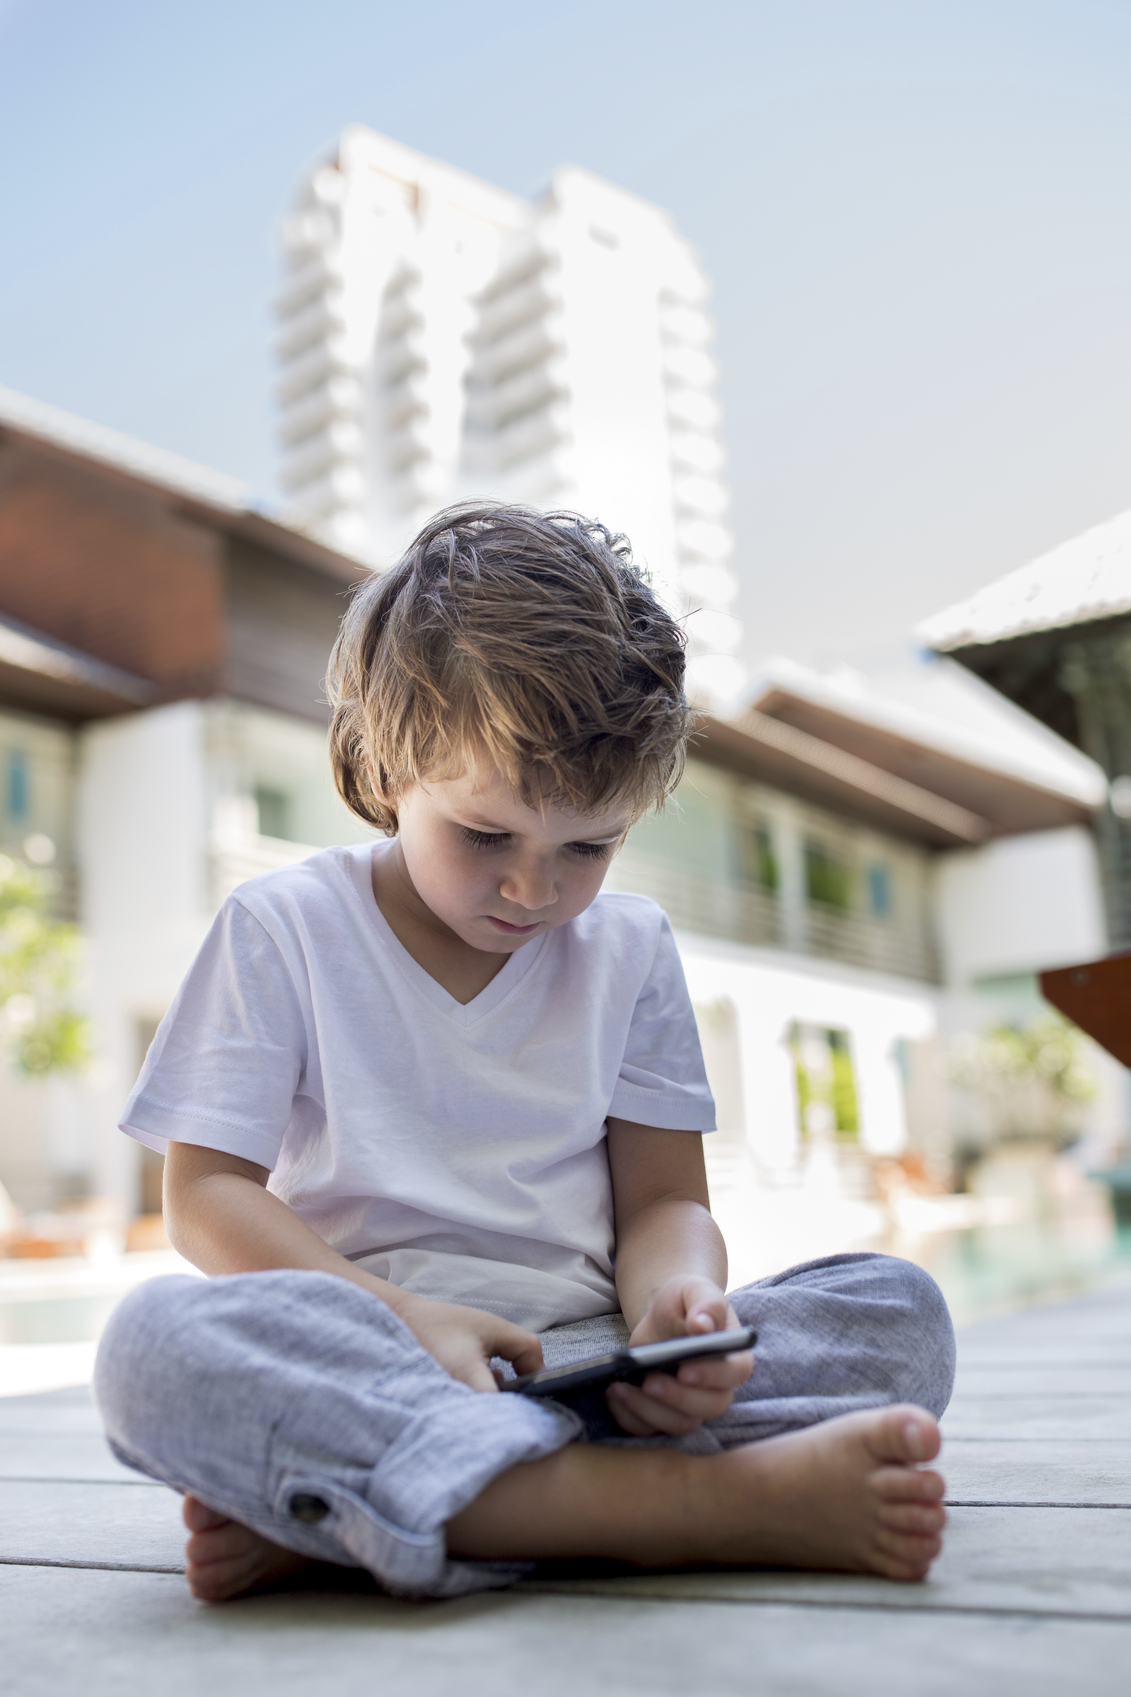 Small kid sitting on a floor outside and using cell phone.